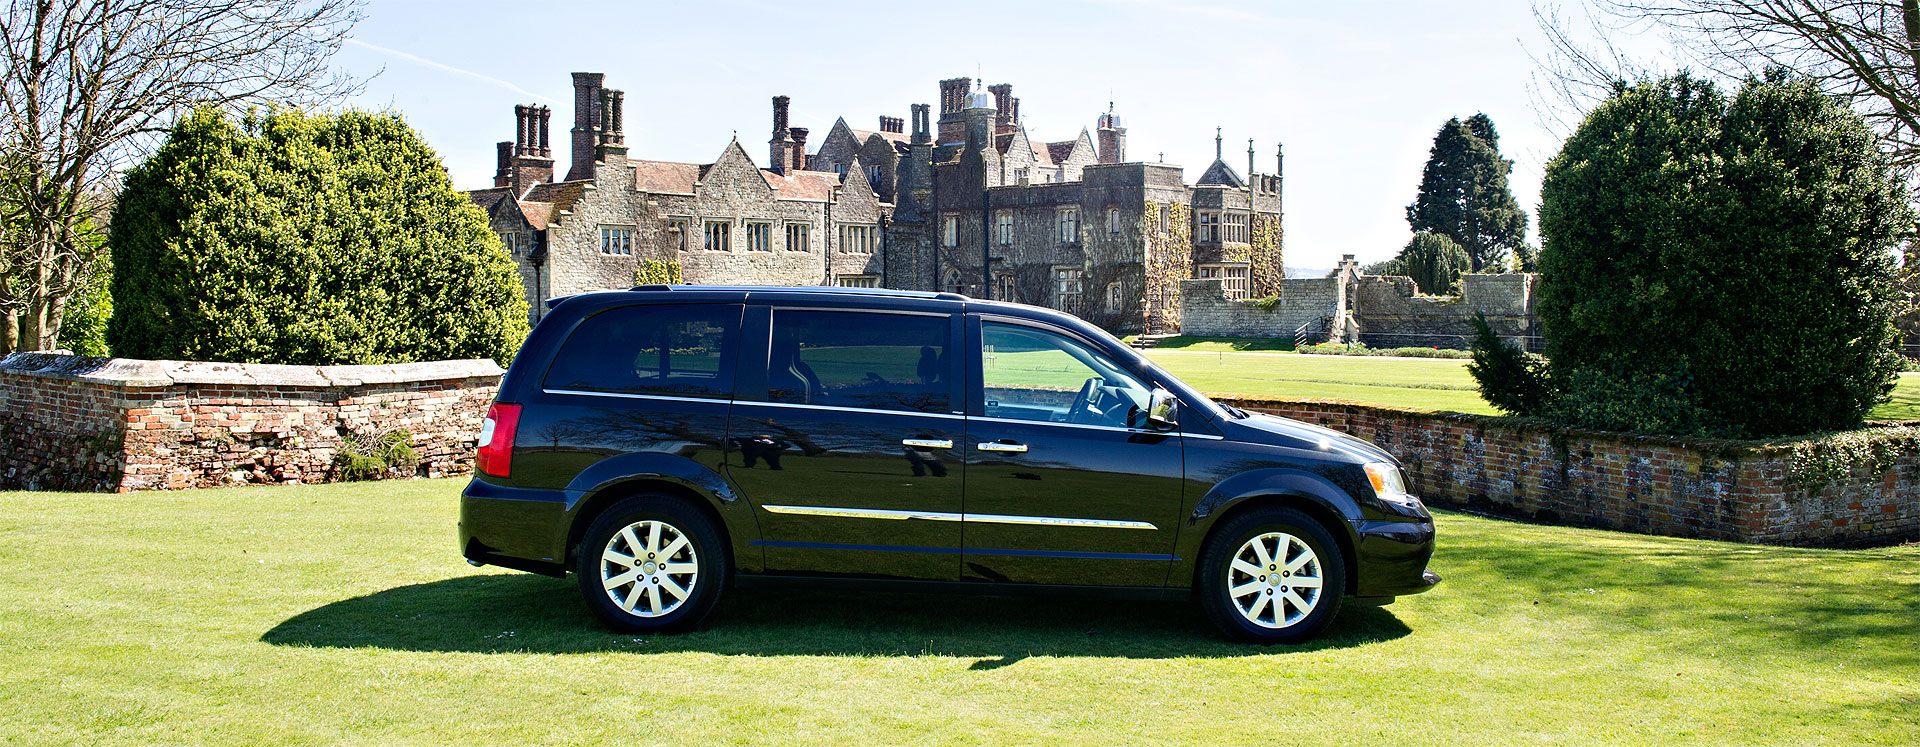 6 seater chauffeur vehicle - Grand Chrysler Voyager Limited Edition